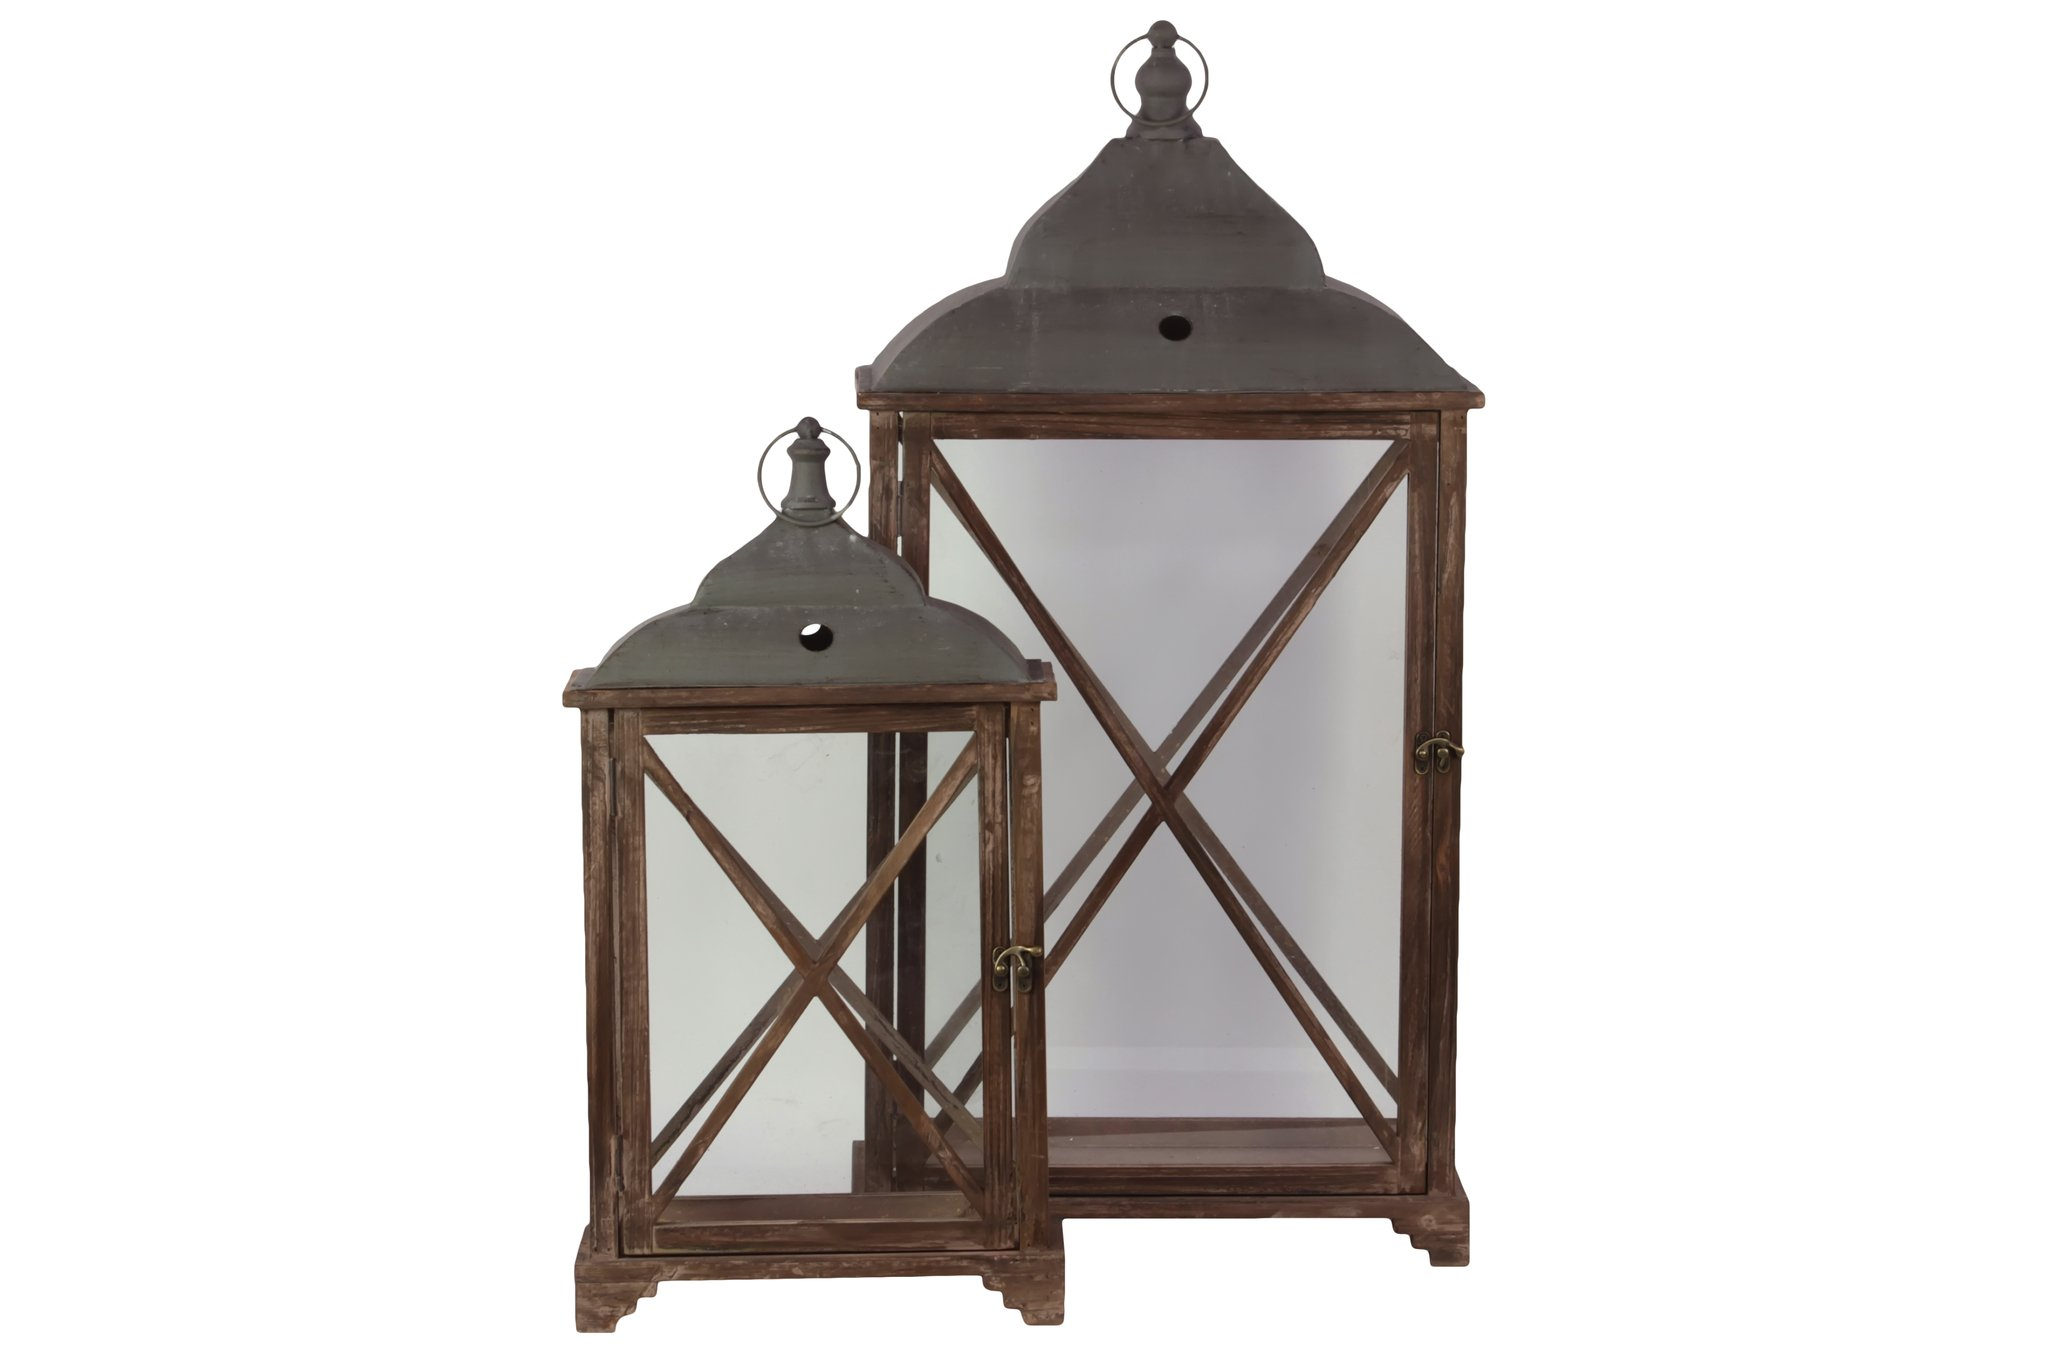 Urban Trends 46013 Rectangular Lantern with Cast Iron Top, Metal Ring Handle and Glass Sides Set of Two Stained Wood Finish Sienna Brown